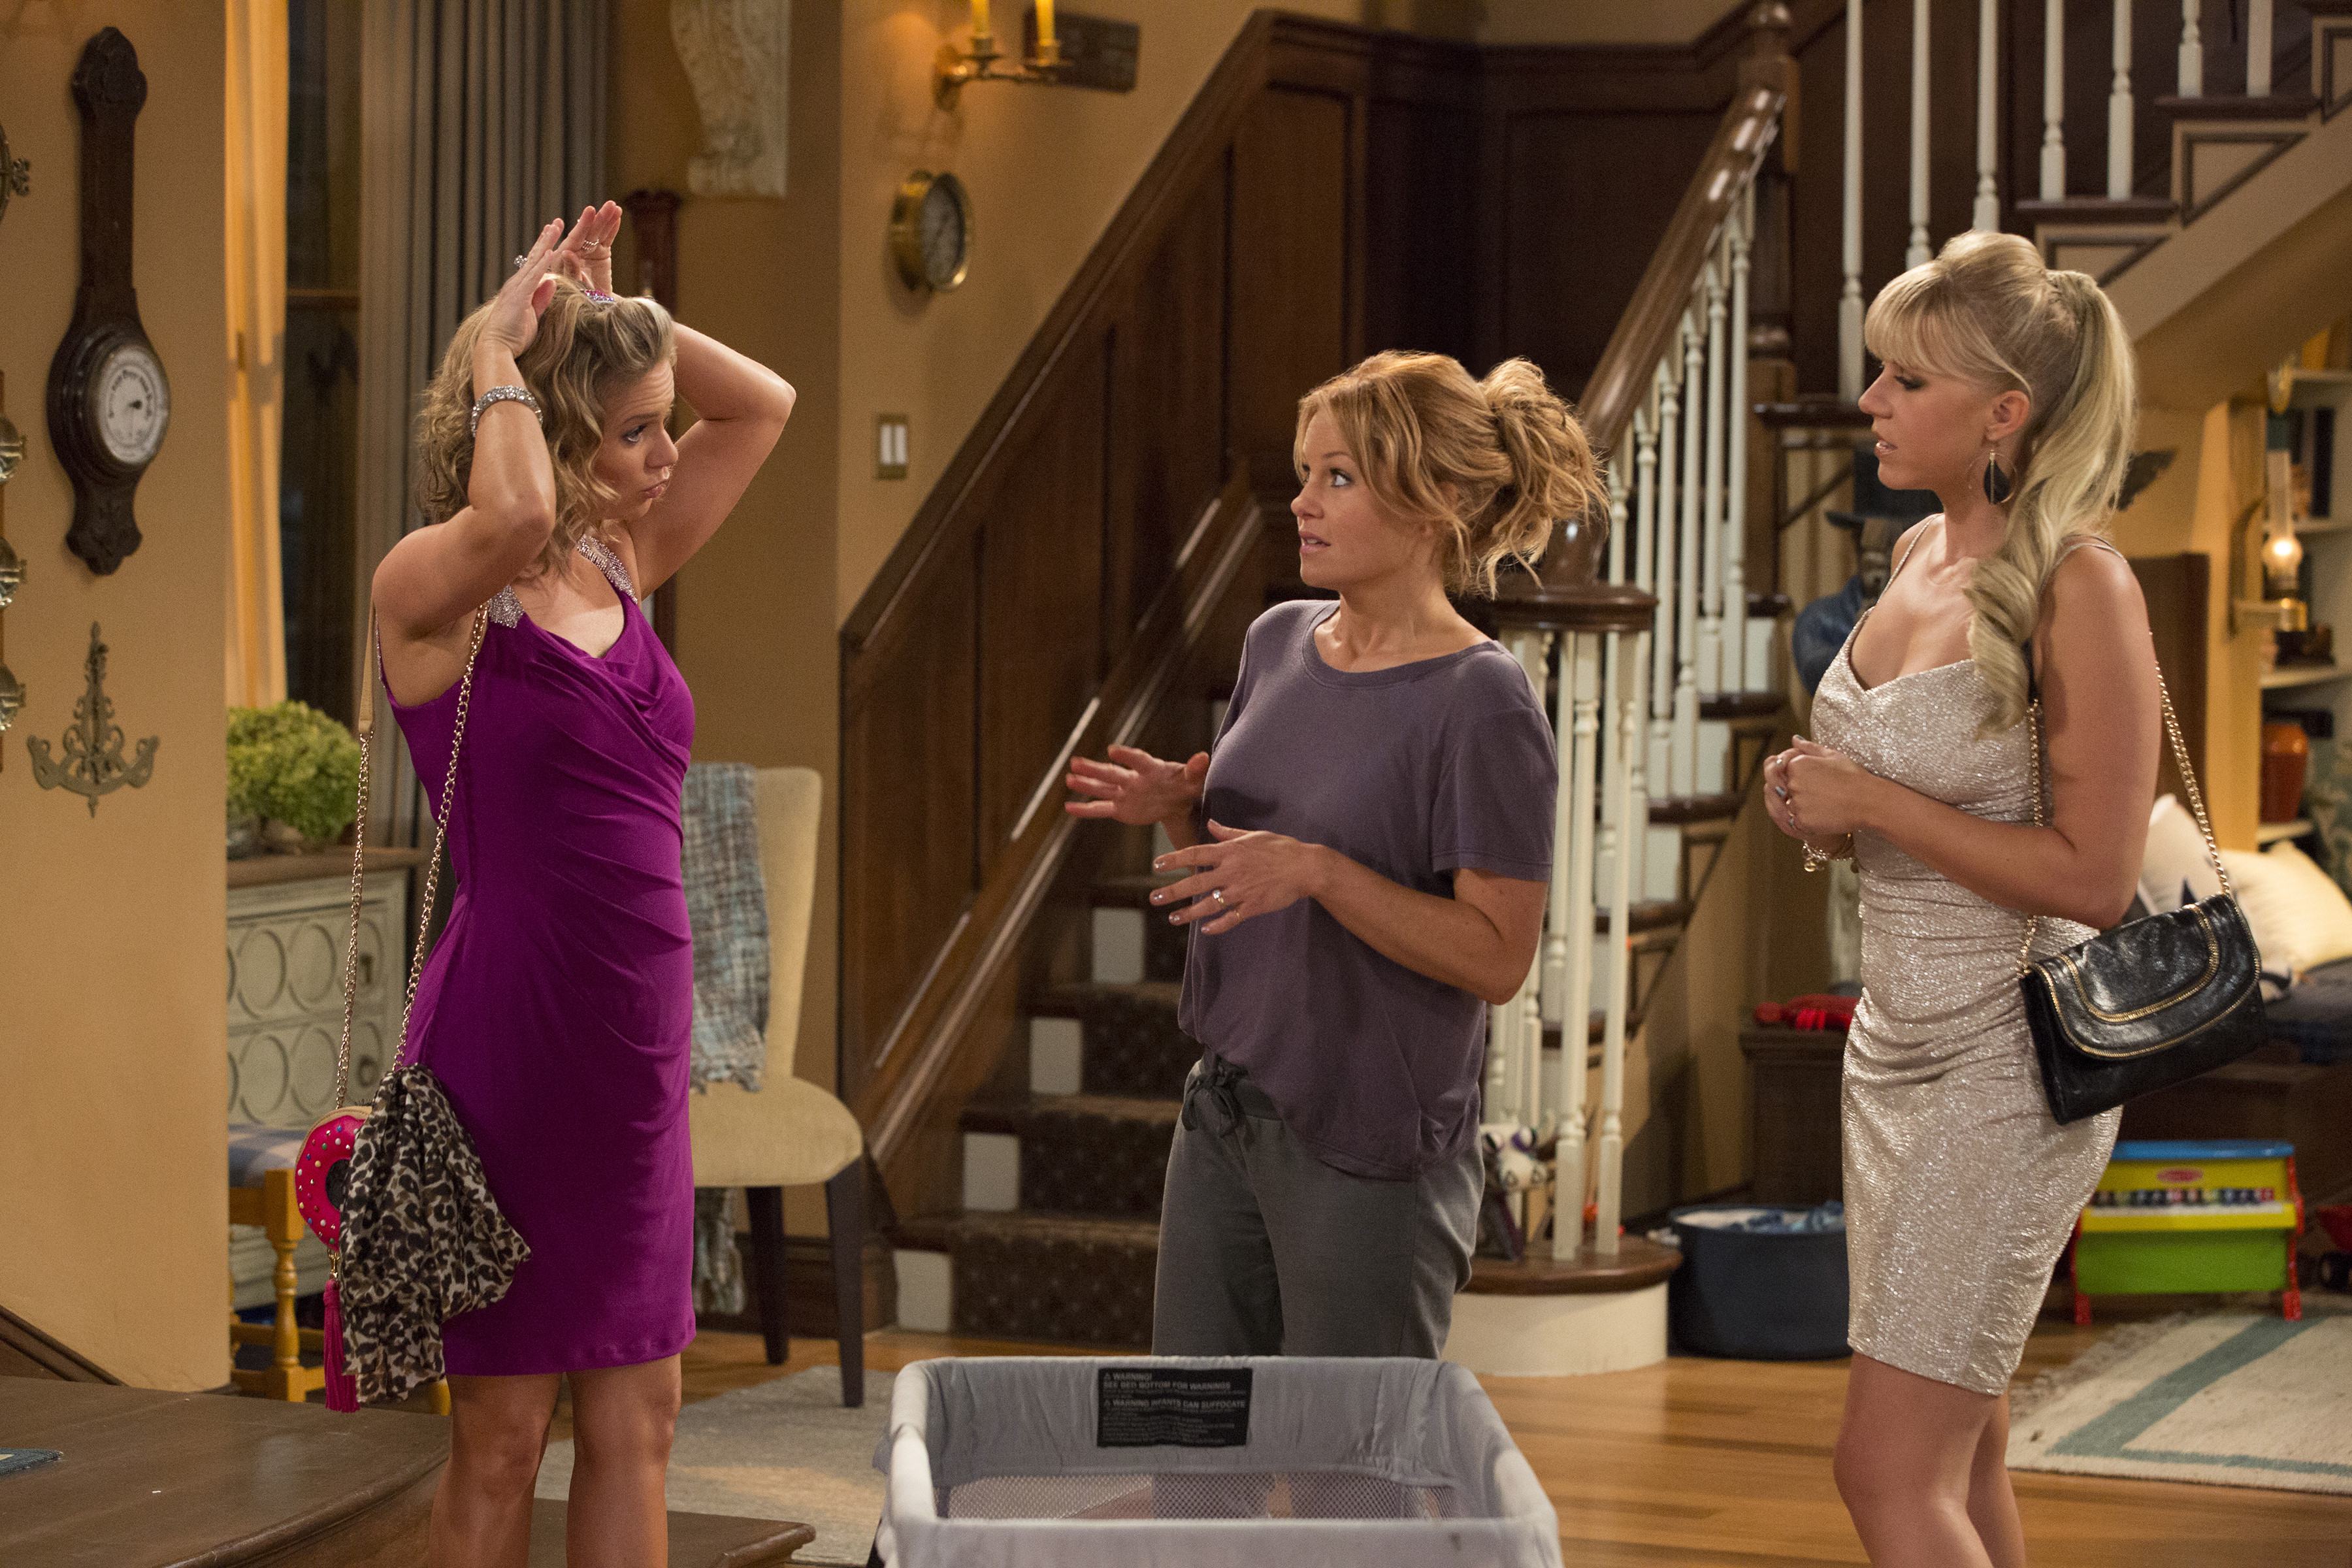 new fuller house photos feature the family reunion we ve all new fuller house photos feature the family reunion we ve all been waiting